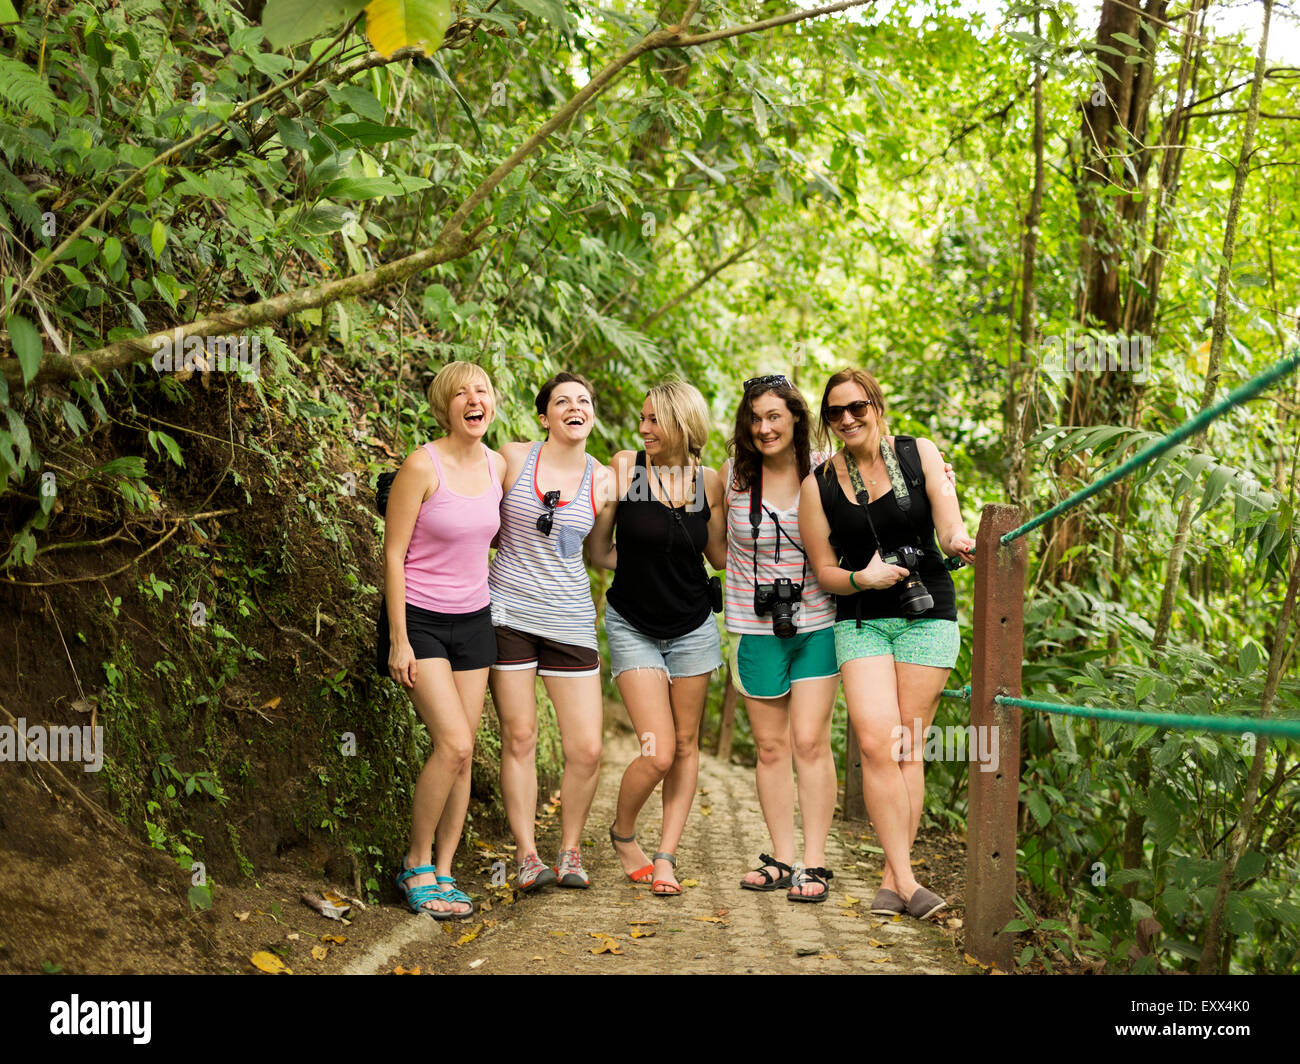 Young women on footpath in forest - Stock Image